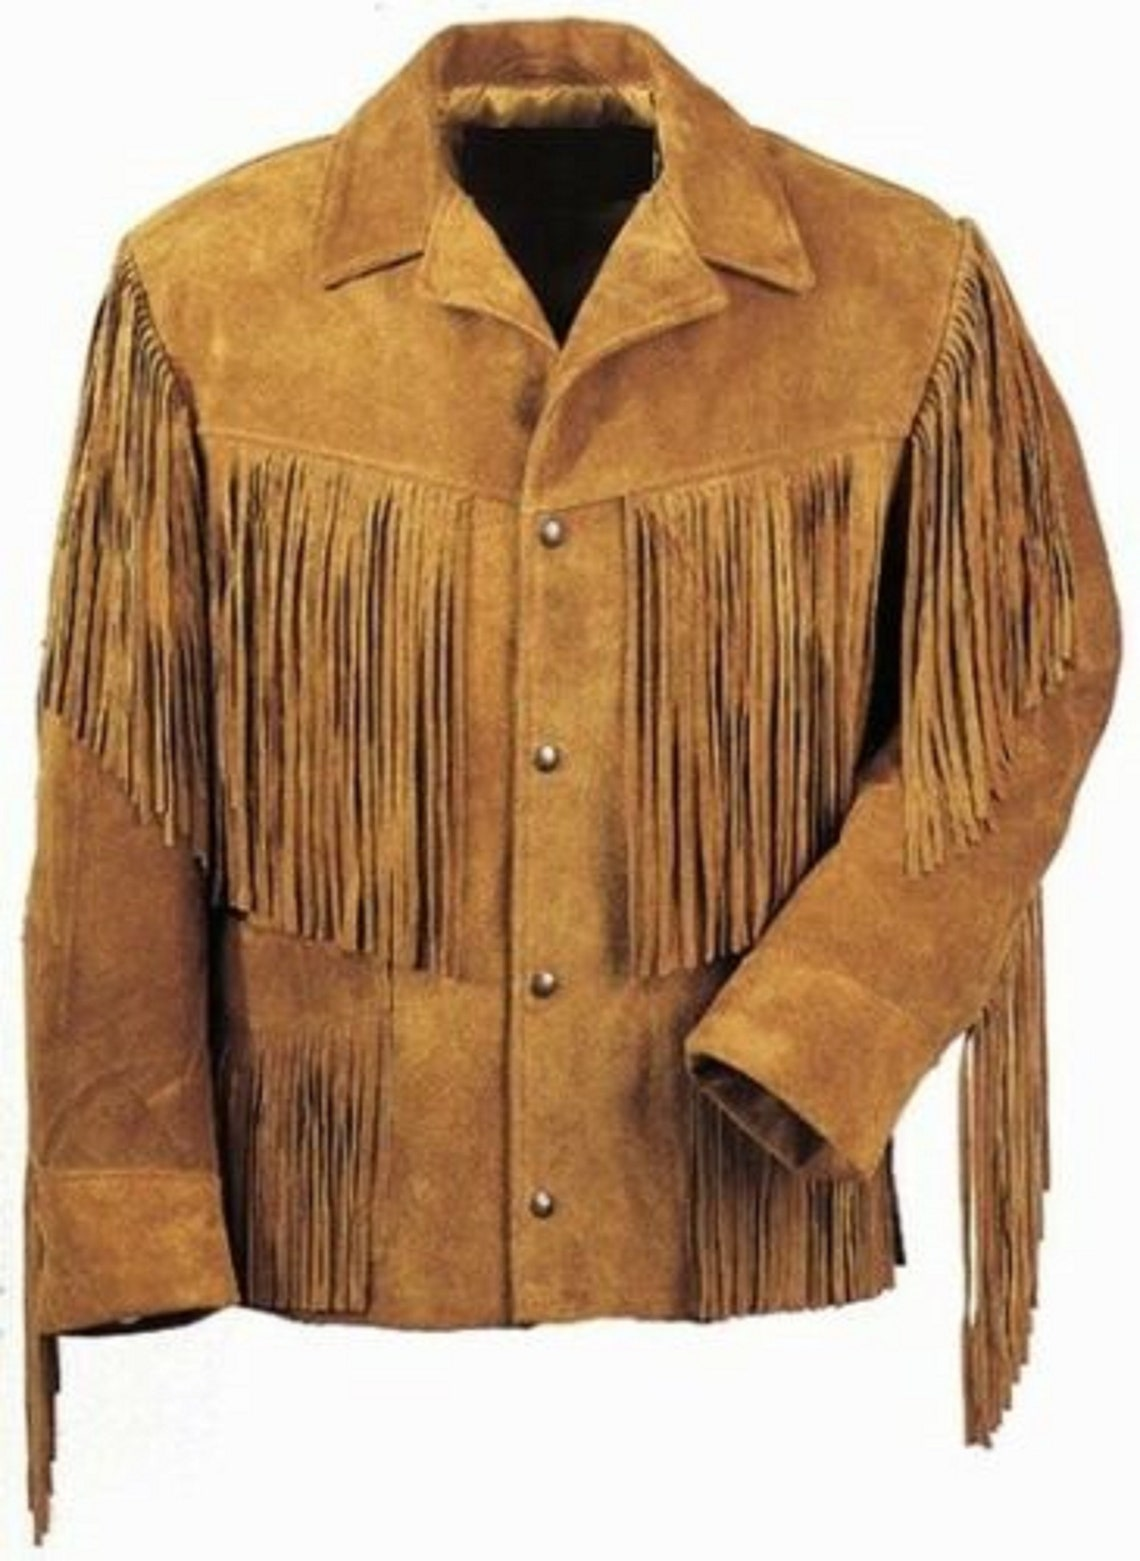 100% Real Man's Fringe Style Western Jacket Native American Brown Tan Suede Leather Outerwear Cowboy With Sp54